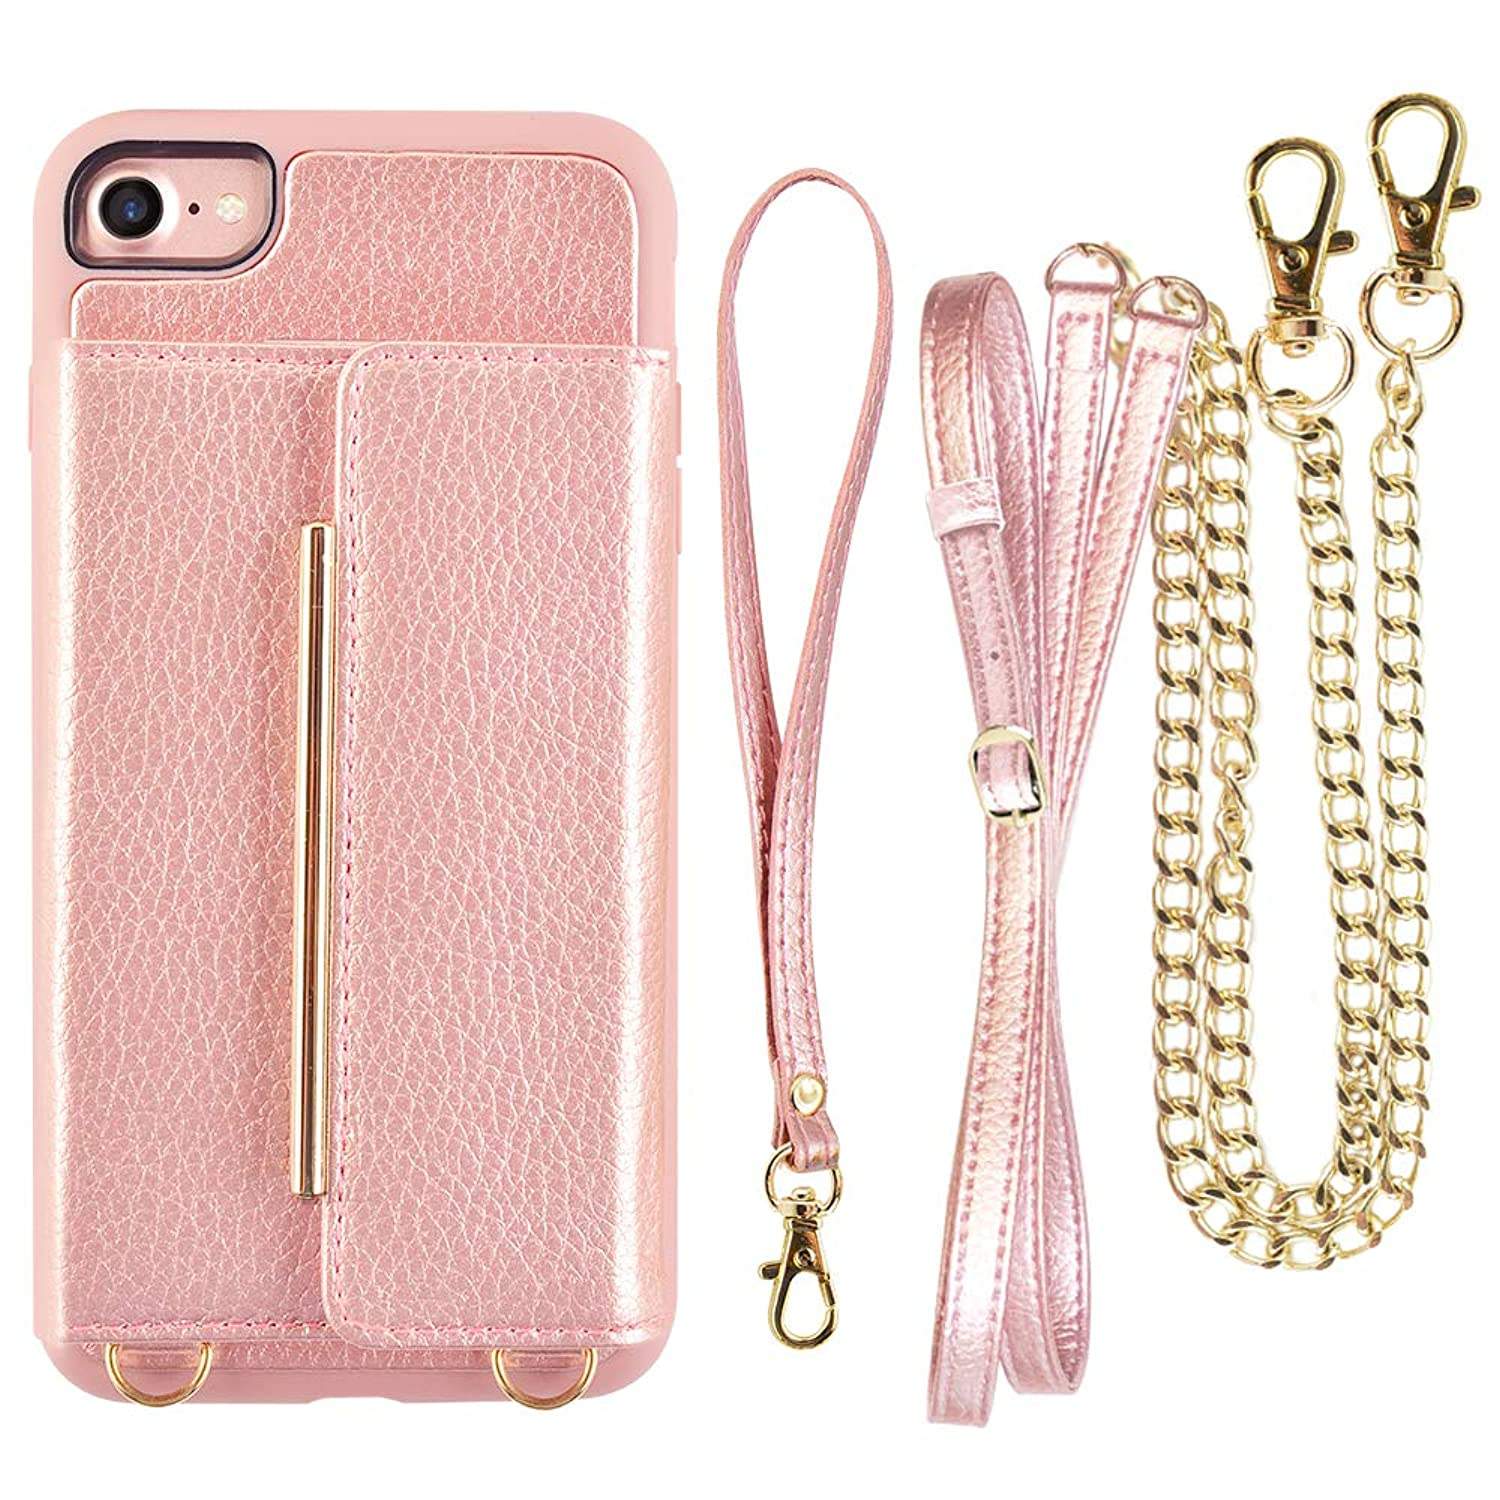 iPhone 8 Crossbody Case, ZVEdeng iPhone 7 Wallet Case, iPhone 7 Card Holder Case, iPhone 8 Card Case, Wallet iPhone 8 Case Leather with Stand-Rose Gold